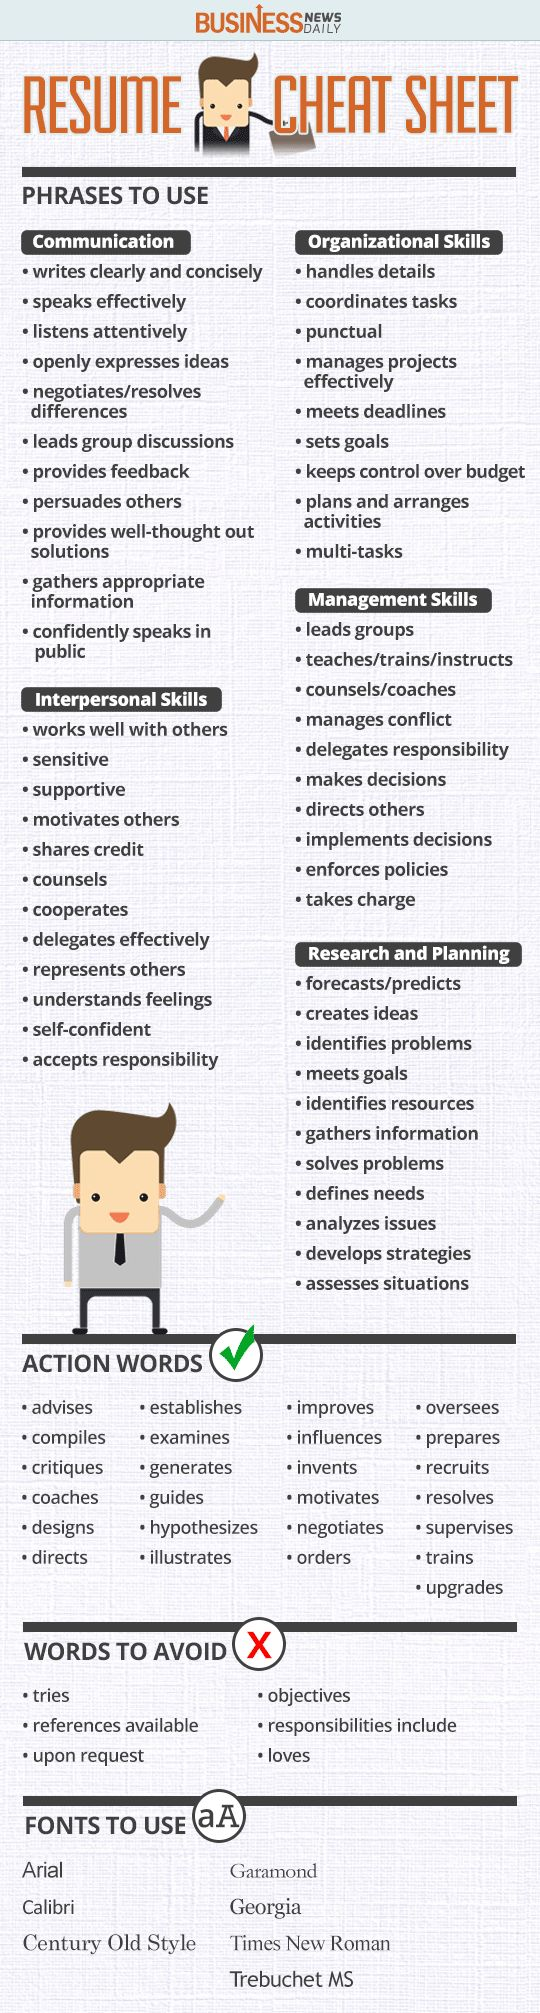 Opposenewapstandardsus  Fascinating  Ideas About Resume On Pinterest  Cv Format Resume Cv And  With Fetching Resume Cheat Sheet Infographic Andrews Almost Done With A Complete Unit On Employment Which With Easy On The Eye Forklift Resume Sample Also Leasing Manager Resume In Addition Good Profile For Resume And Pharmacy Technician Resume Template As Well As What Font To Use For A Resume Additionally Free Resume Program From Pinterestcom With Opposenewapstandardsus  Fetching  Ideas About Resume On Pinterest  Cv Format Resume Cv And  With Easy On The Eye Resume Cheat Sheet Infographic Andrews Almost Done With A Complete Unit On Employment Which And Fascinating Forklift Resume Sample Also Leasing Manager Resume In Addition Good Profile For Resume From Pinterestcom